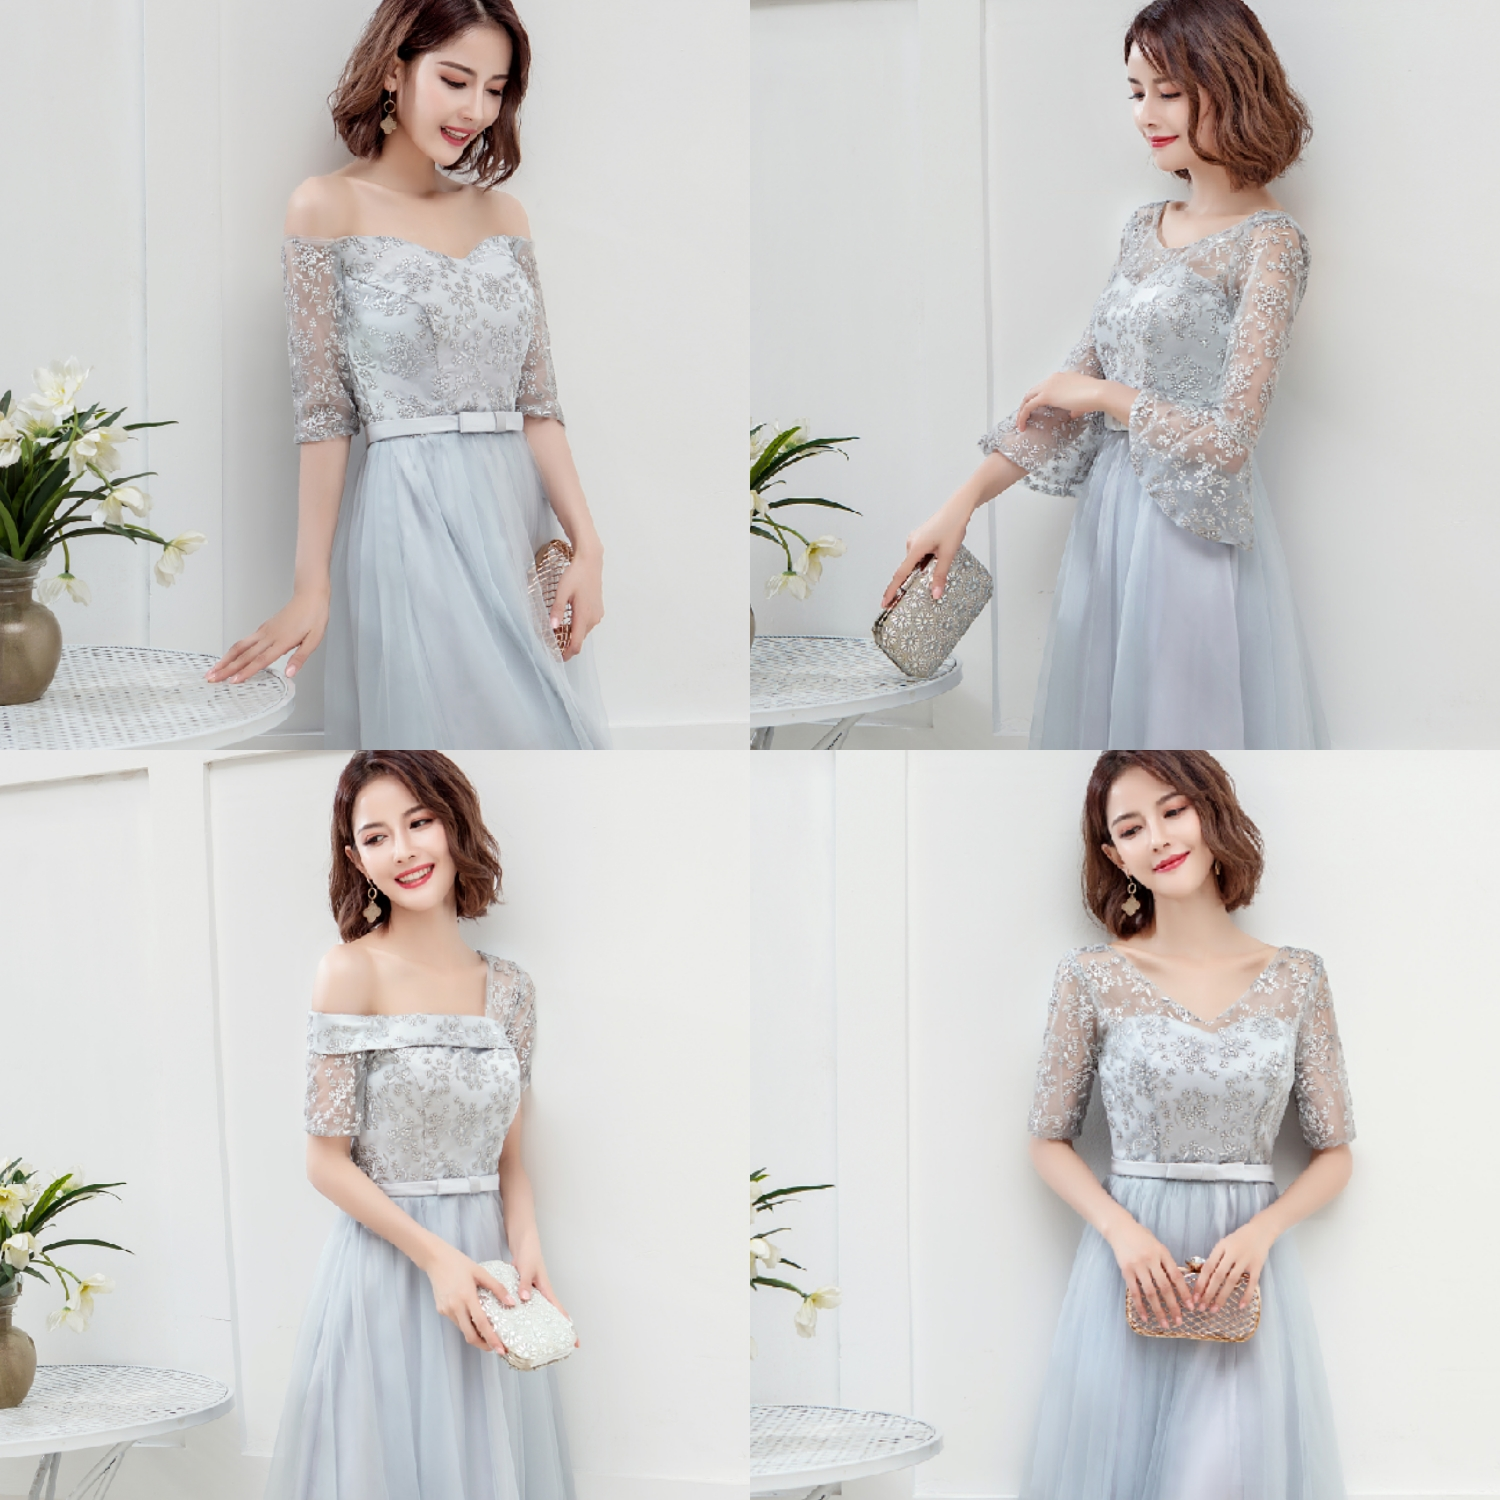 Gray Burgundy Bridesmaid Dresses Gust Wedding Party Sexy Dress Prom Azul Royal Short Party Dress Formal Sister Elegant Vestido